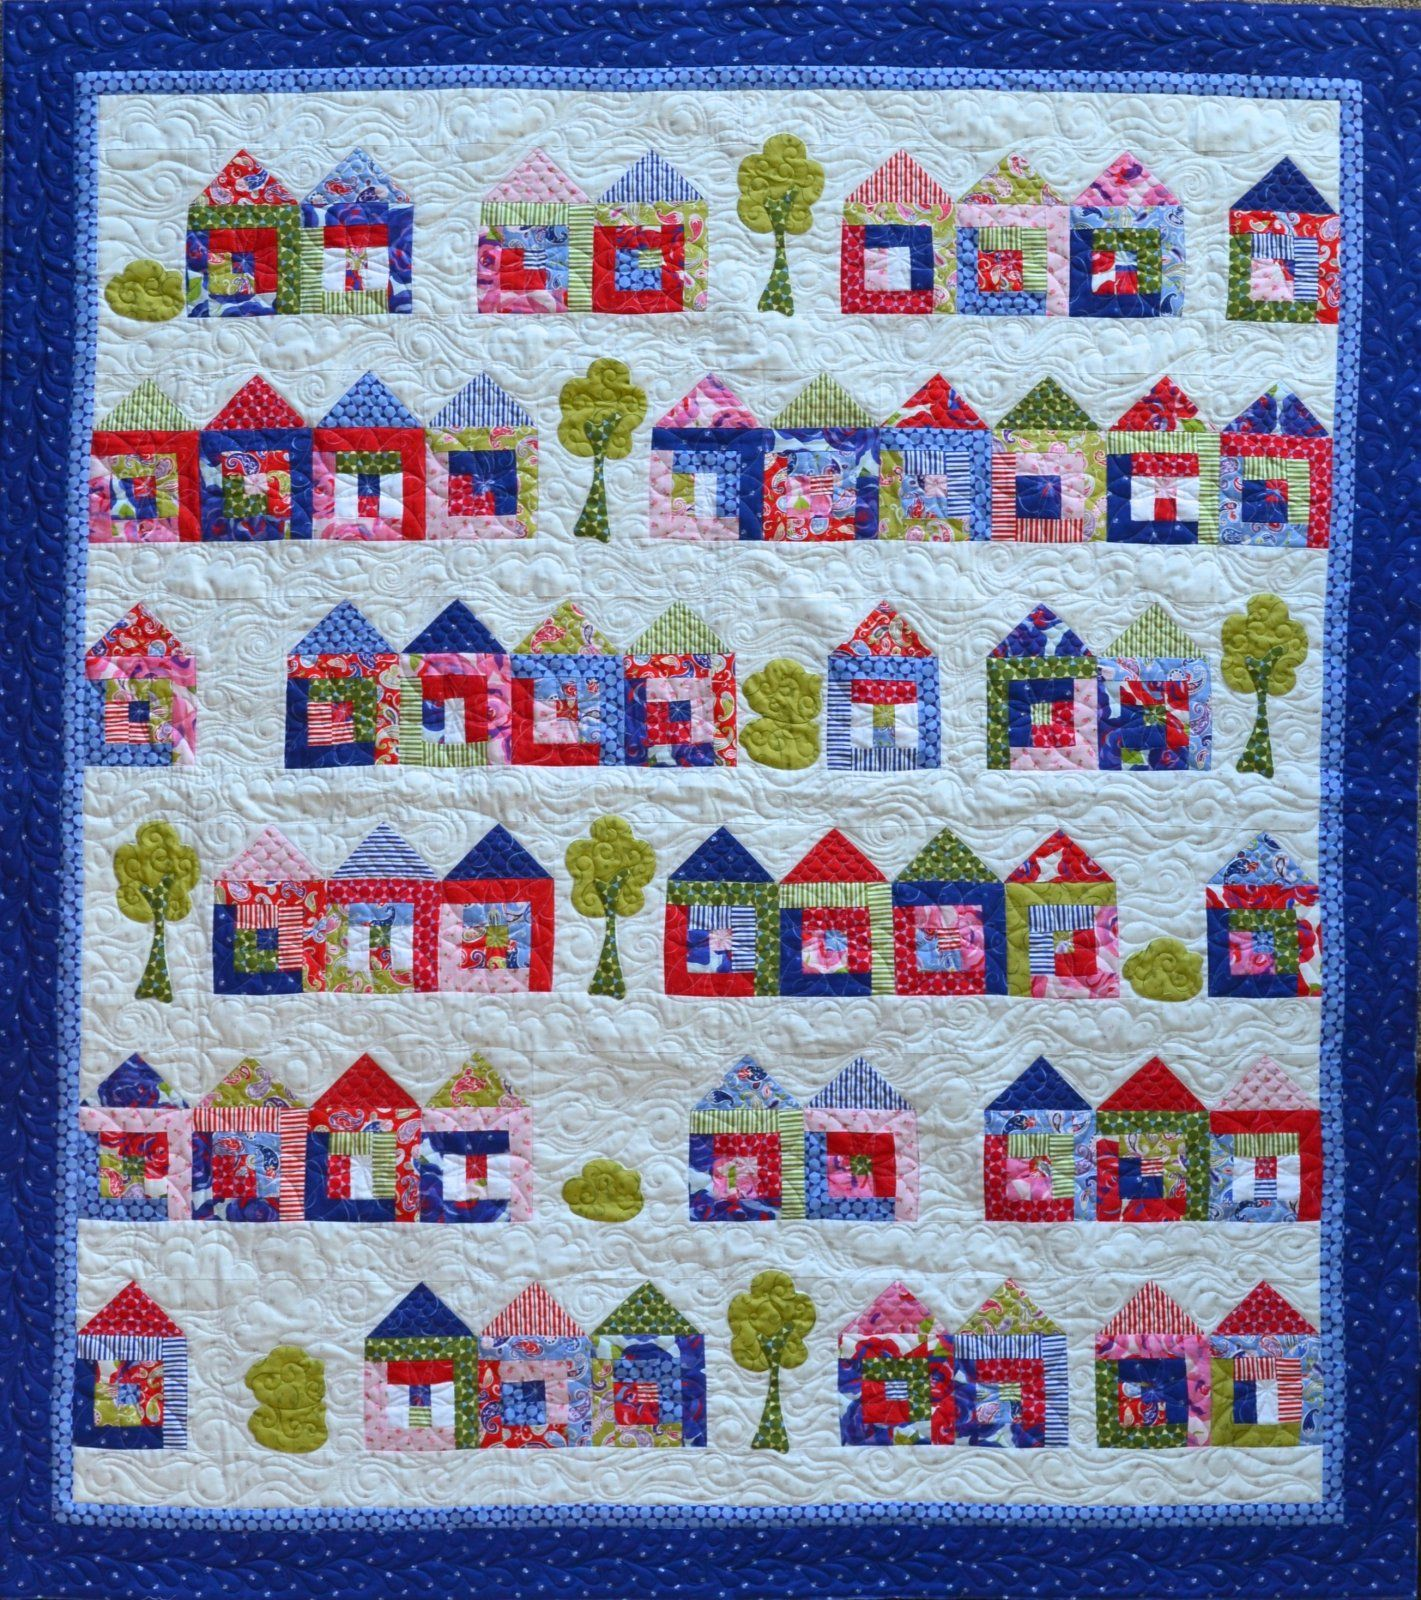 Tiny House Craze Quilt At Jillily Studio House Quilt